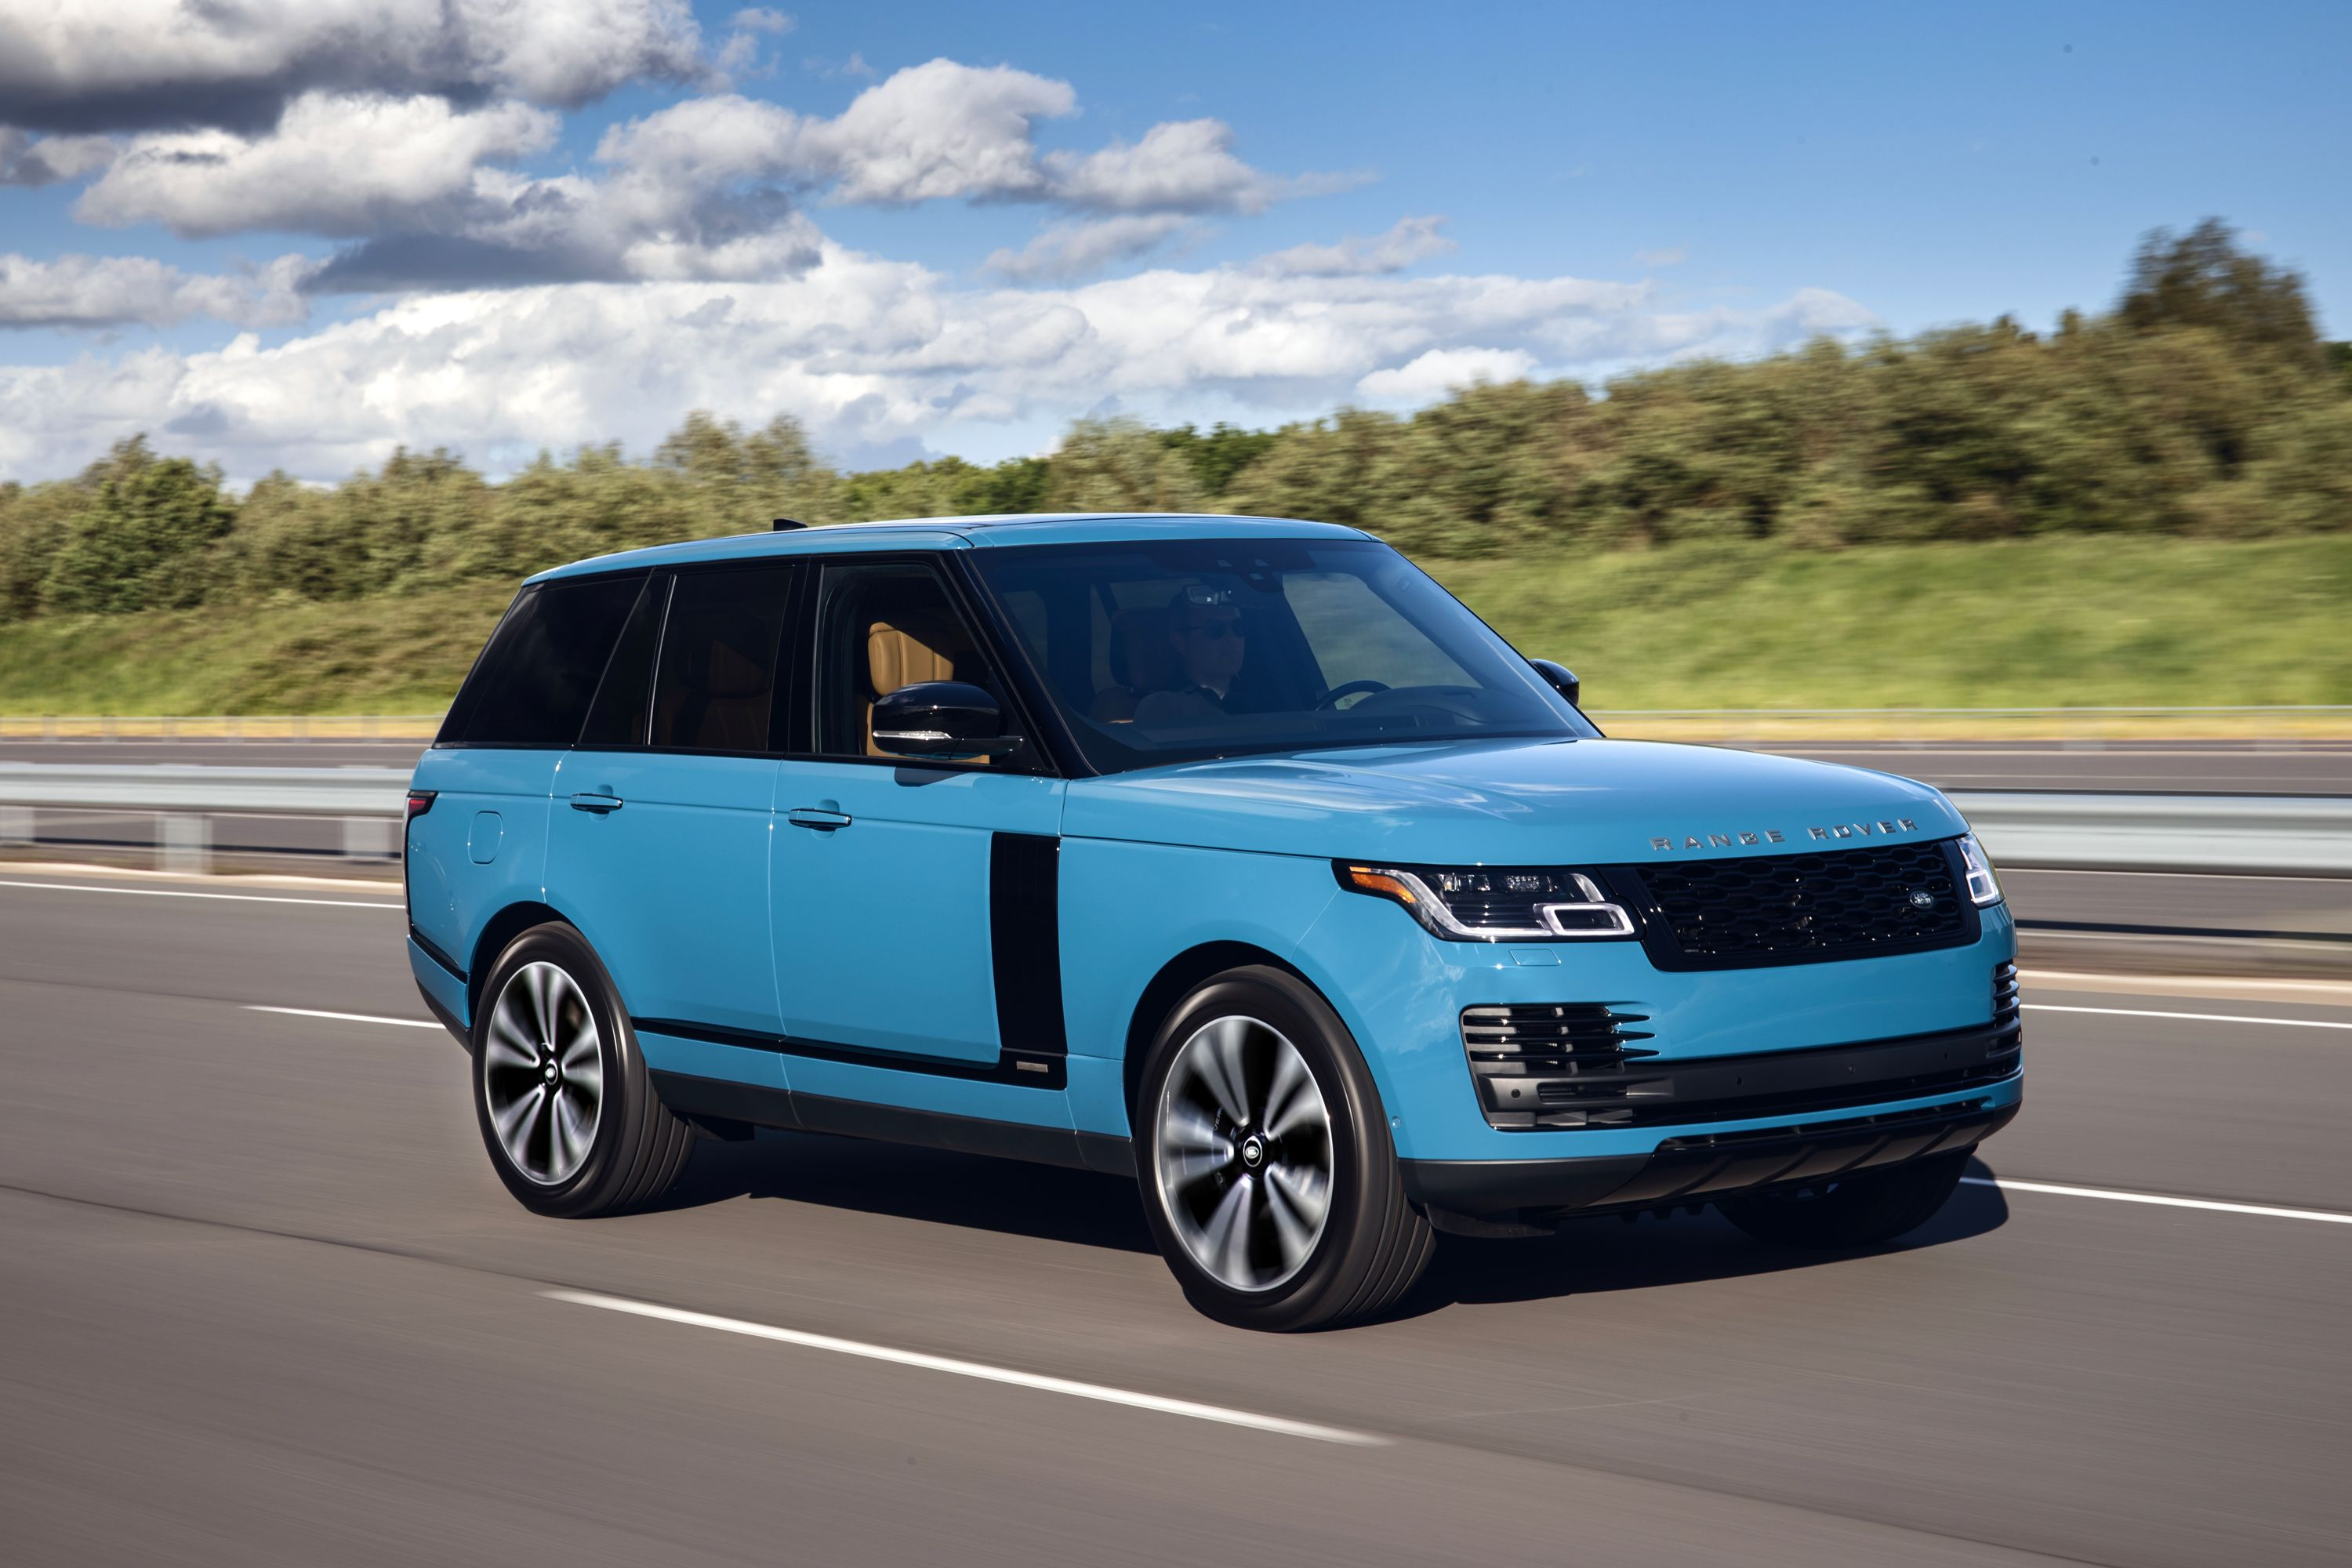 Land Rover Range Rover Features And Specs